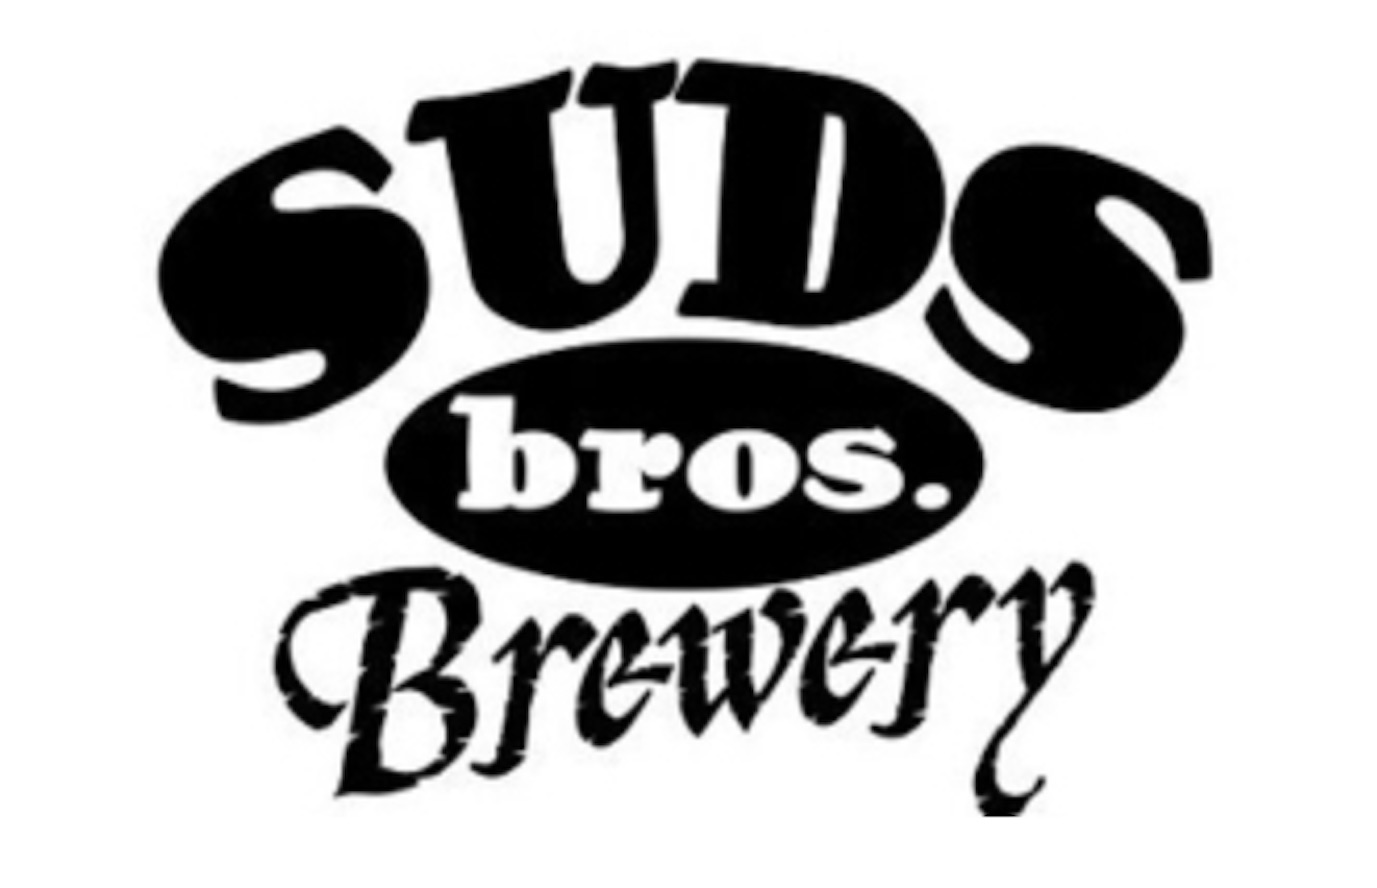 Suds Bros Brewing